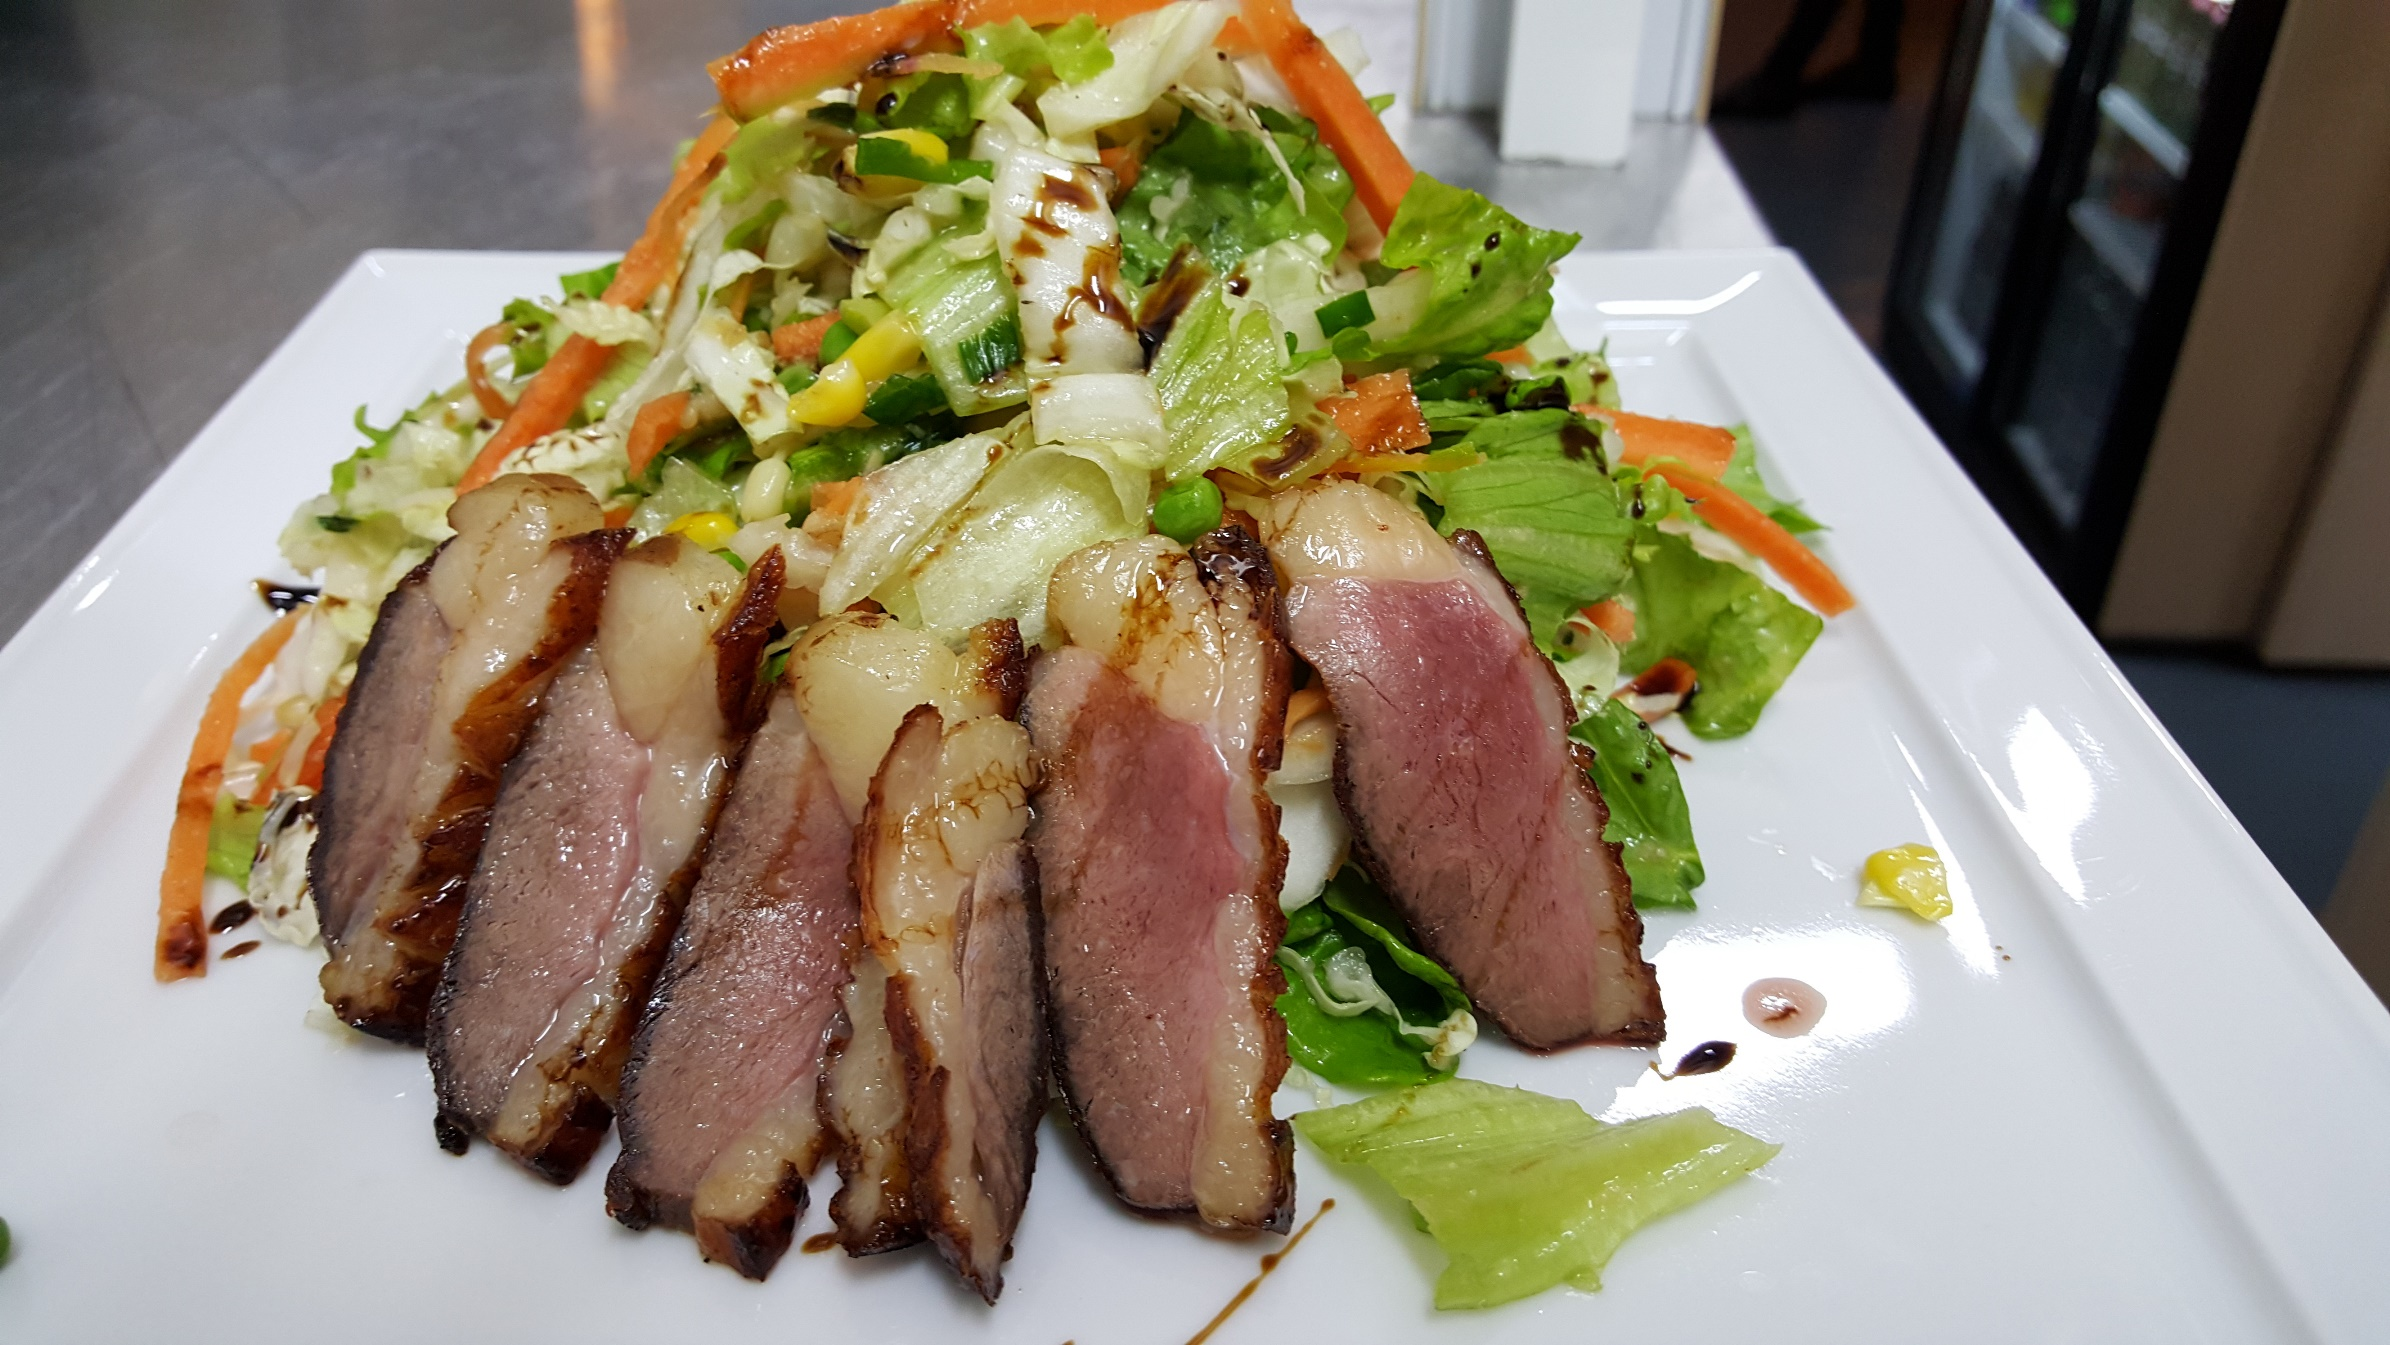 HOT ASIAN DUCK SALAD - salad mix, carrots, sprouts, sweet corn, duck magret poured with tamarind sauce and sliced almonds